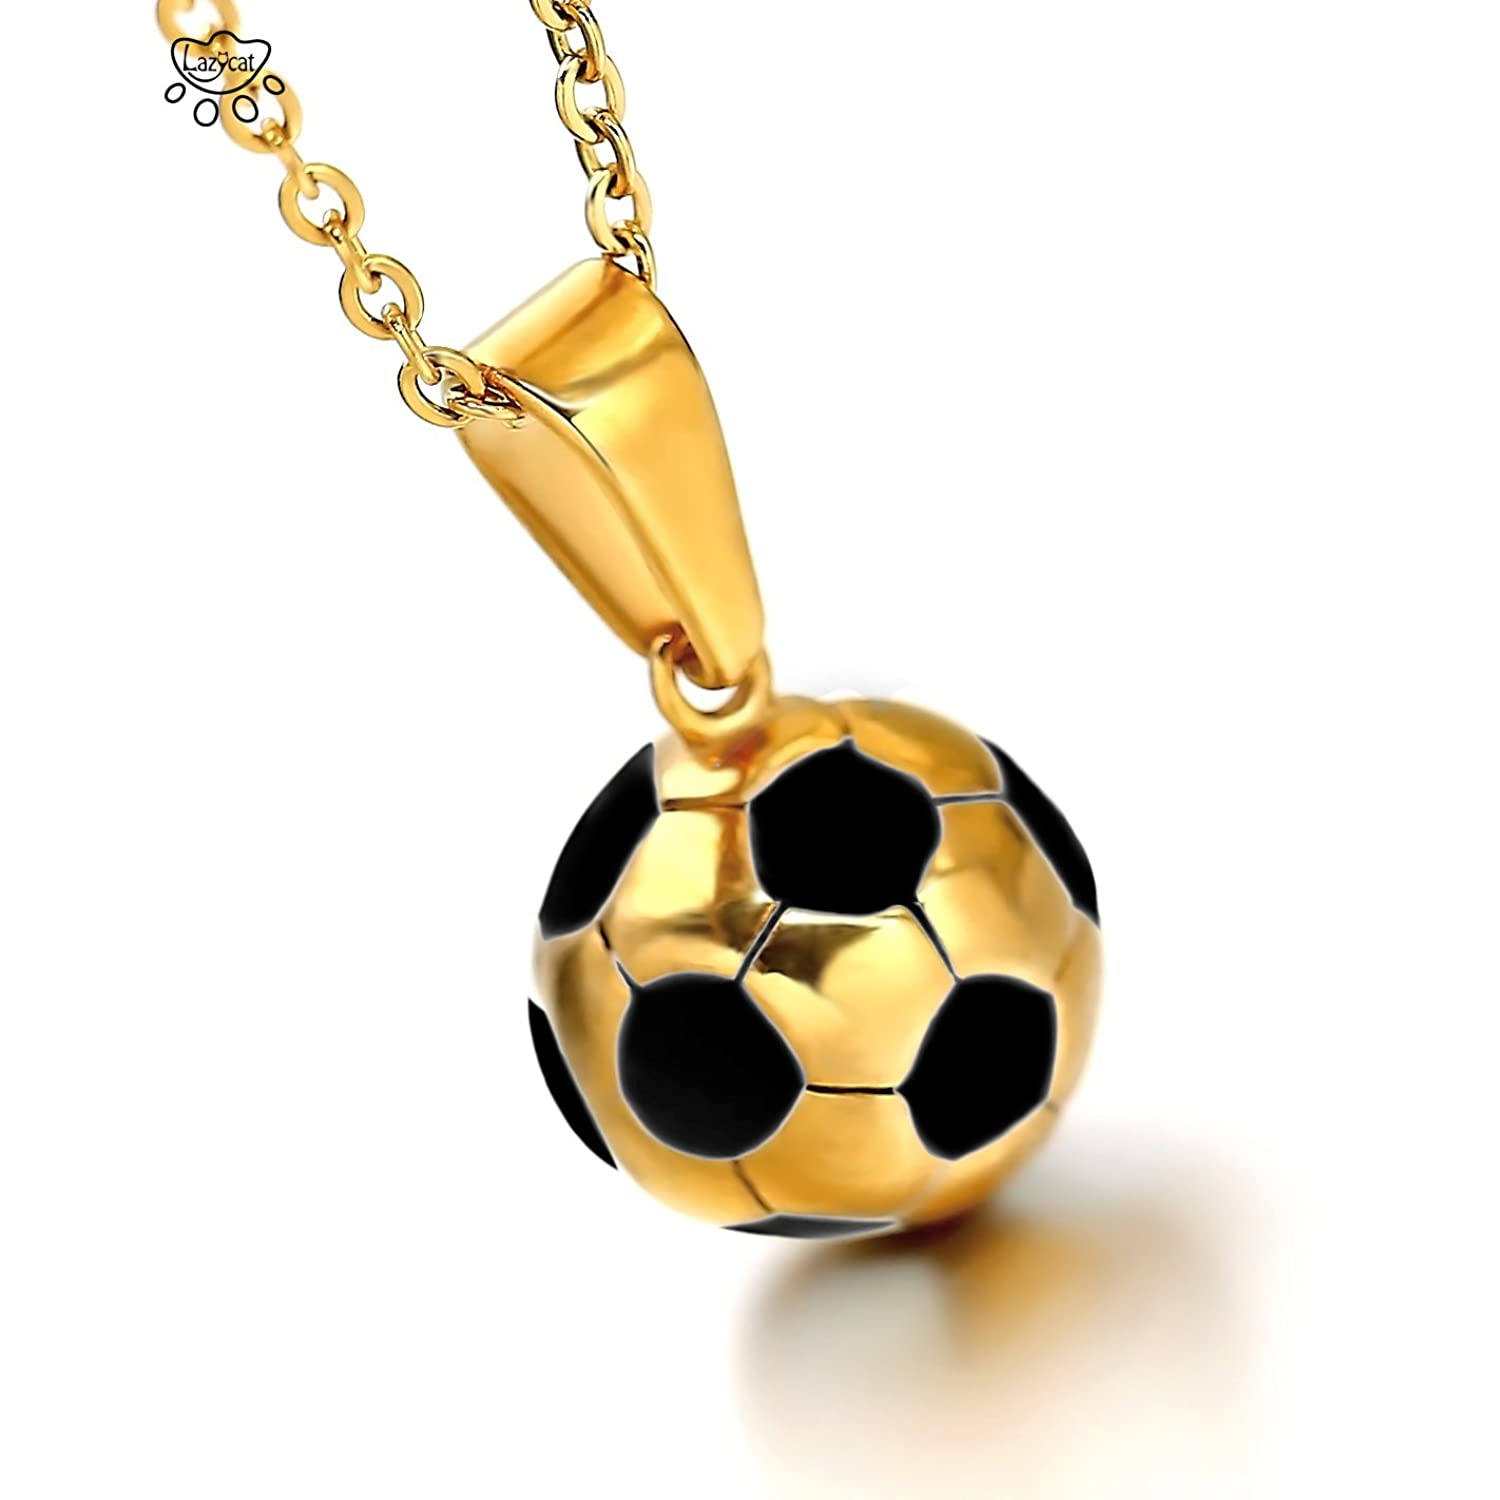 com dp white necklace sterling jewelry silver ball amazon football black soccer inches pendant